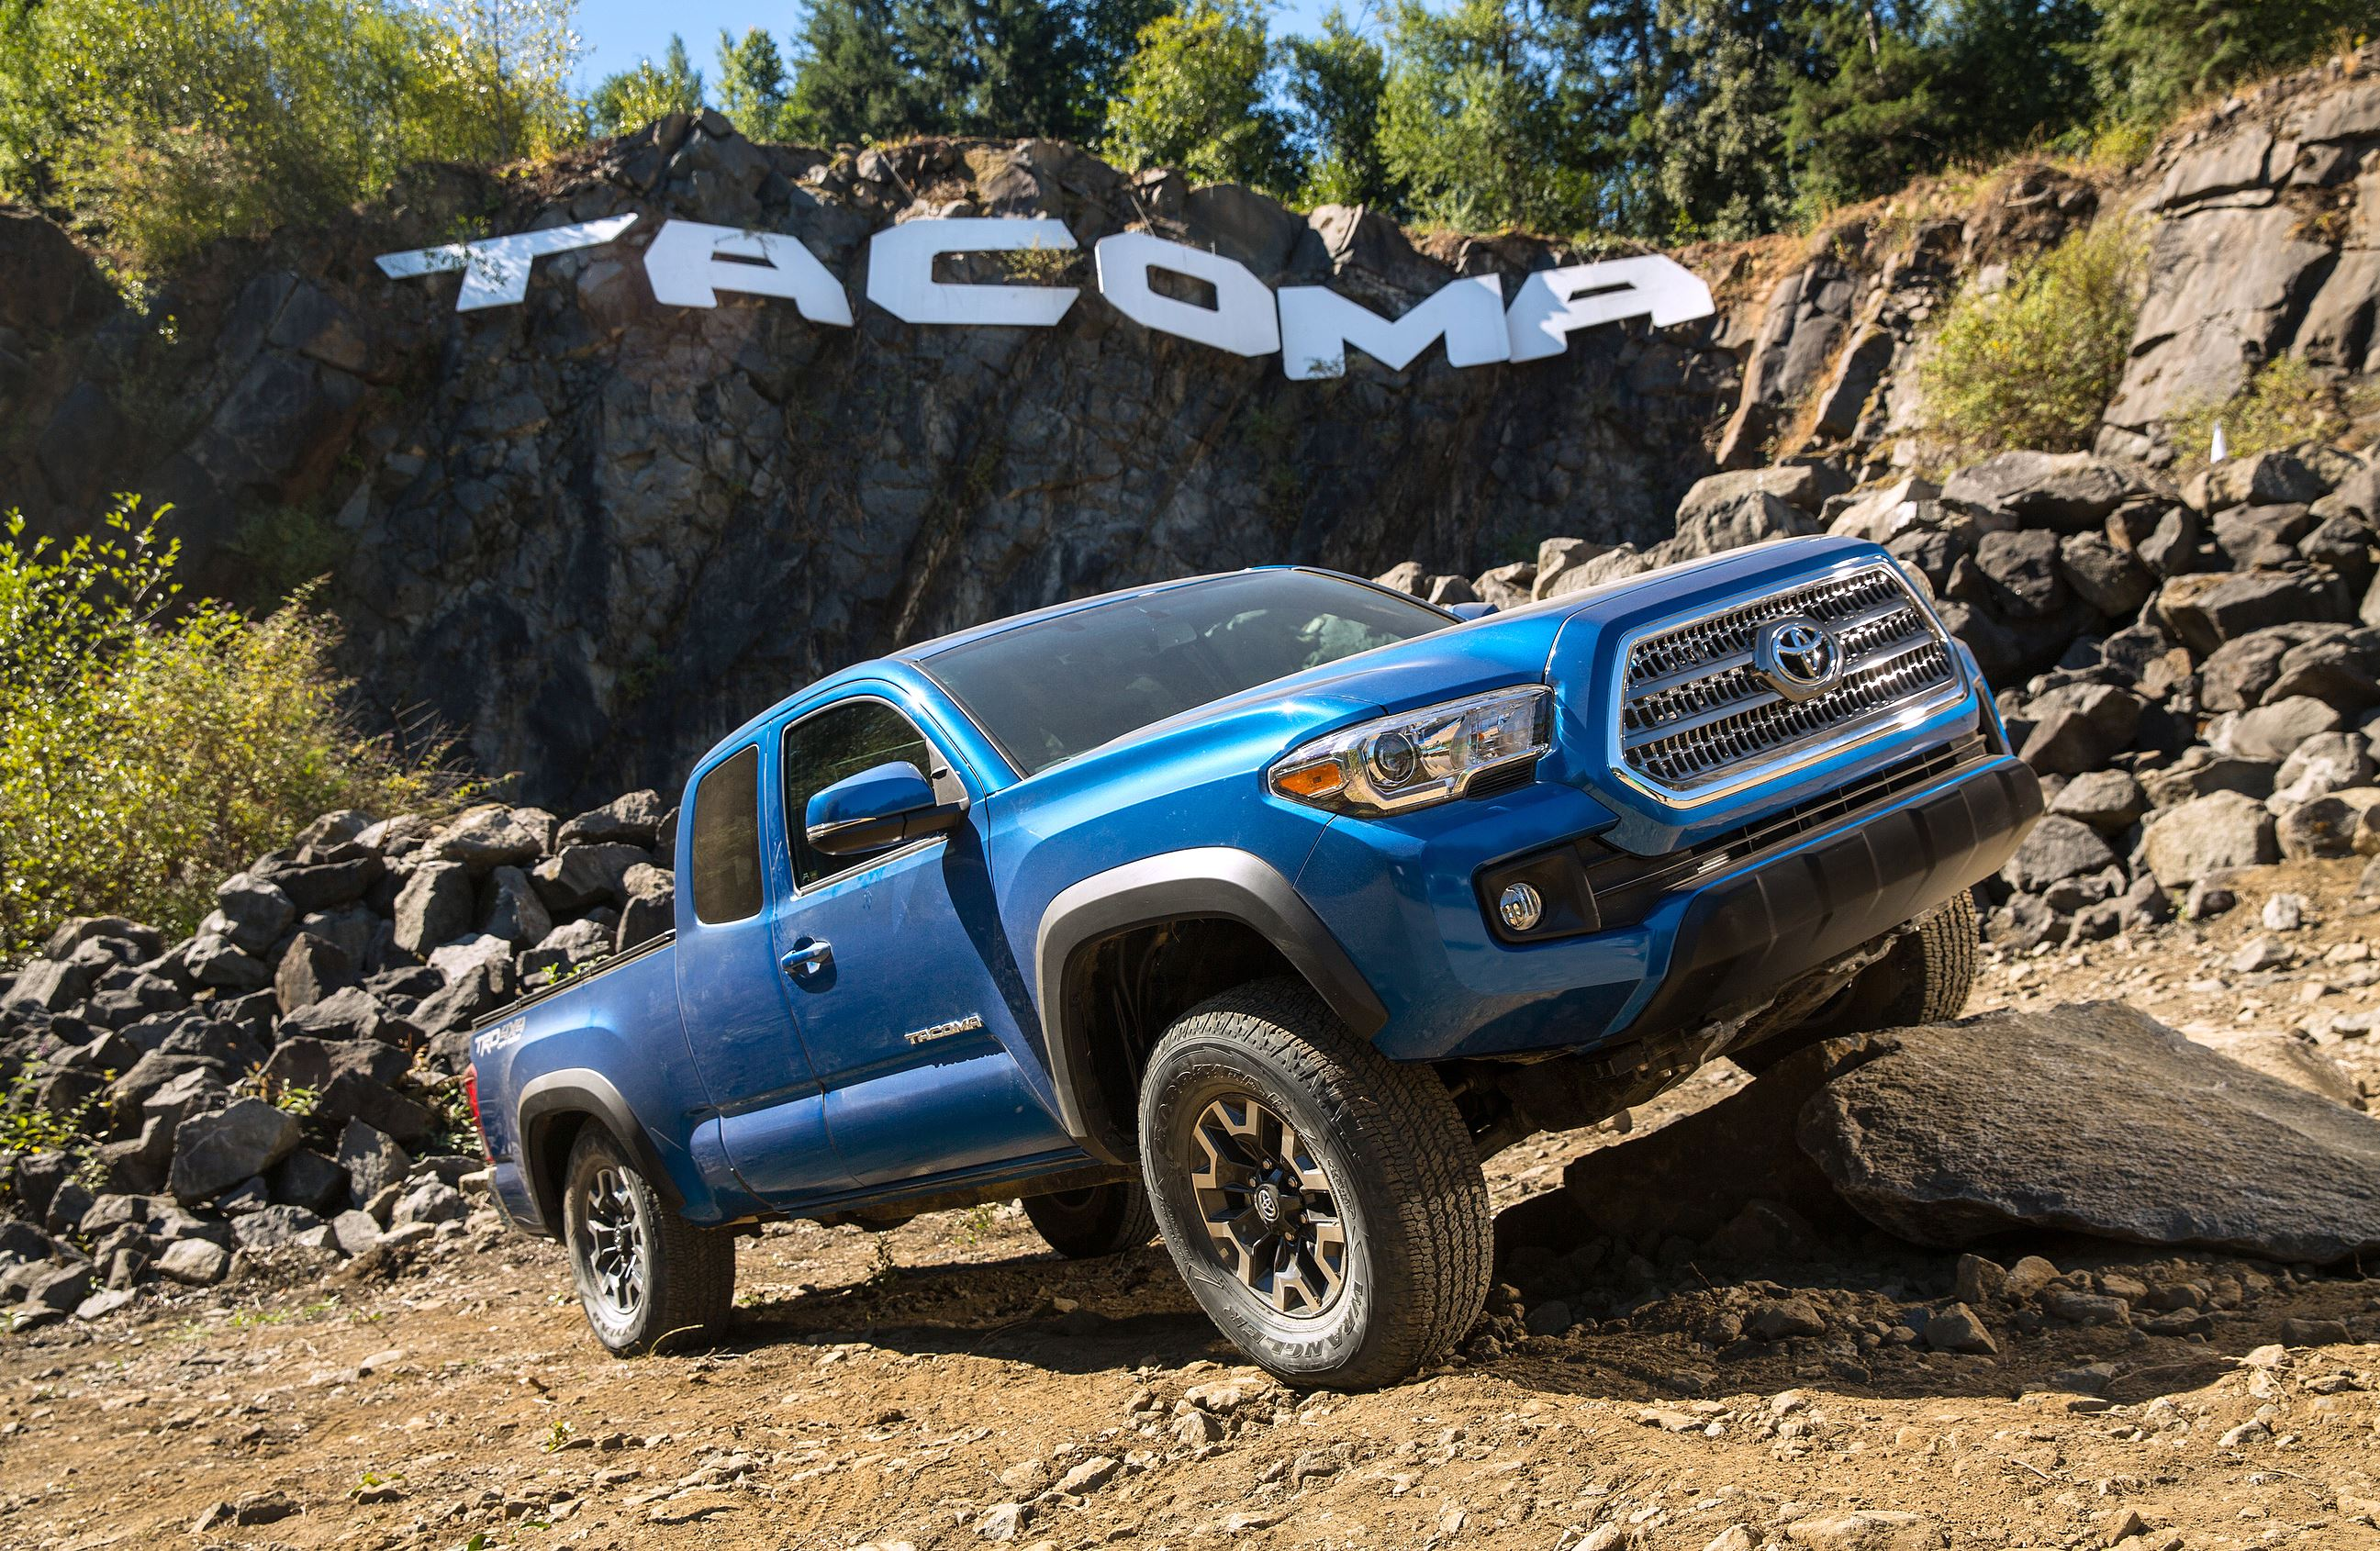 scott sturgis 39 driver 39 s seat toyota tacoma is reliable but noisy pittsburgh post gazette. Black Bedroom Furniture Sets. Home Design Ideas